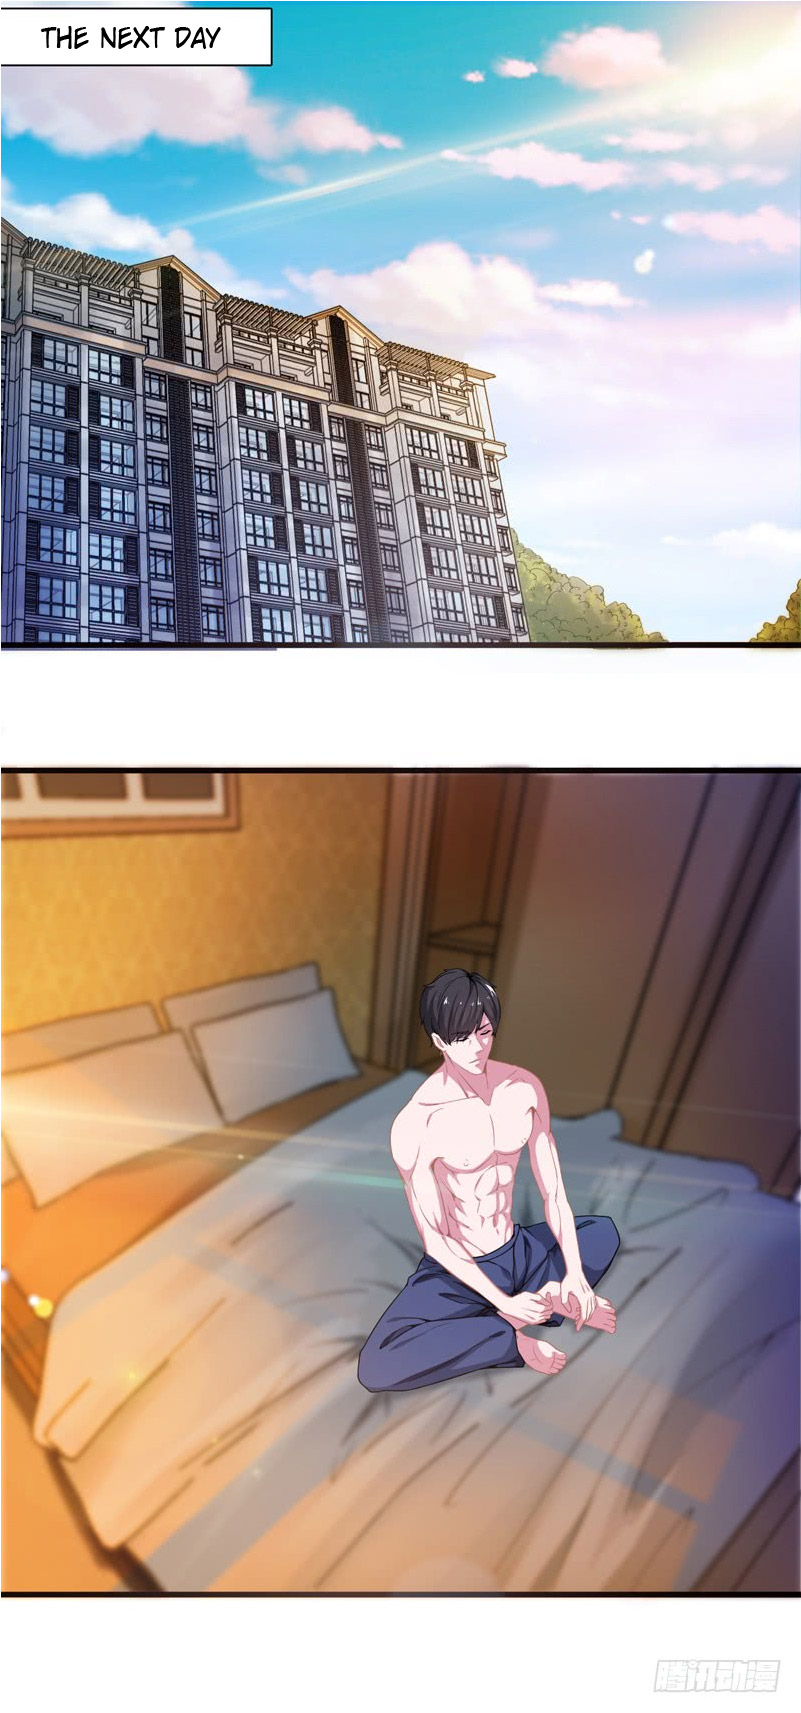 Rebirth of The Urban Mad Immortal Ch. 3